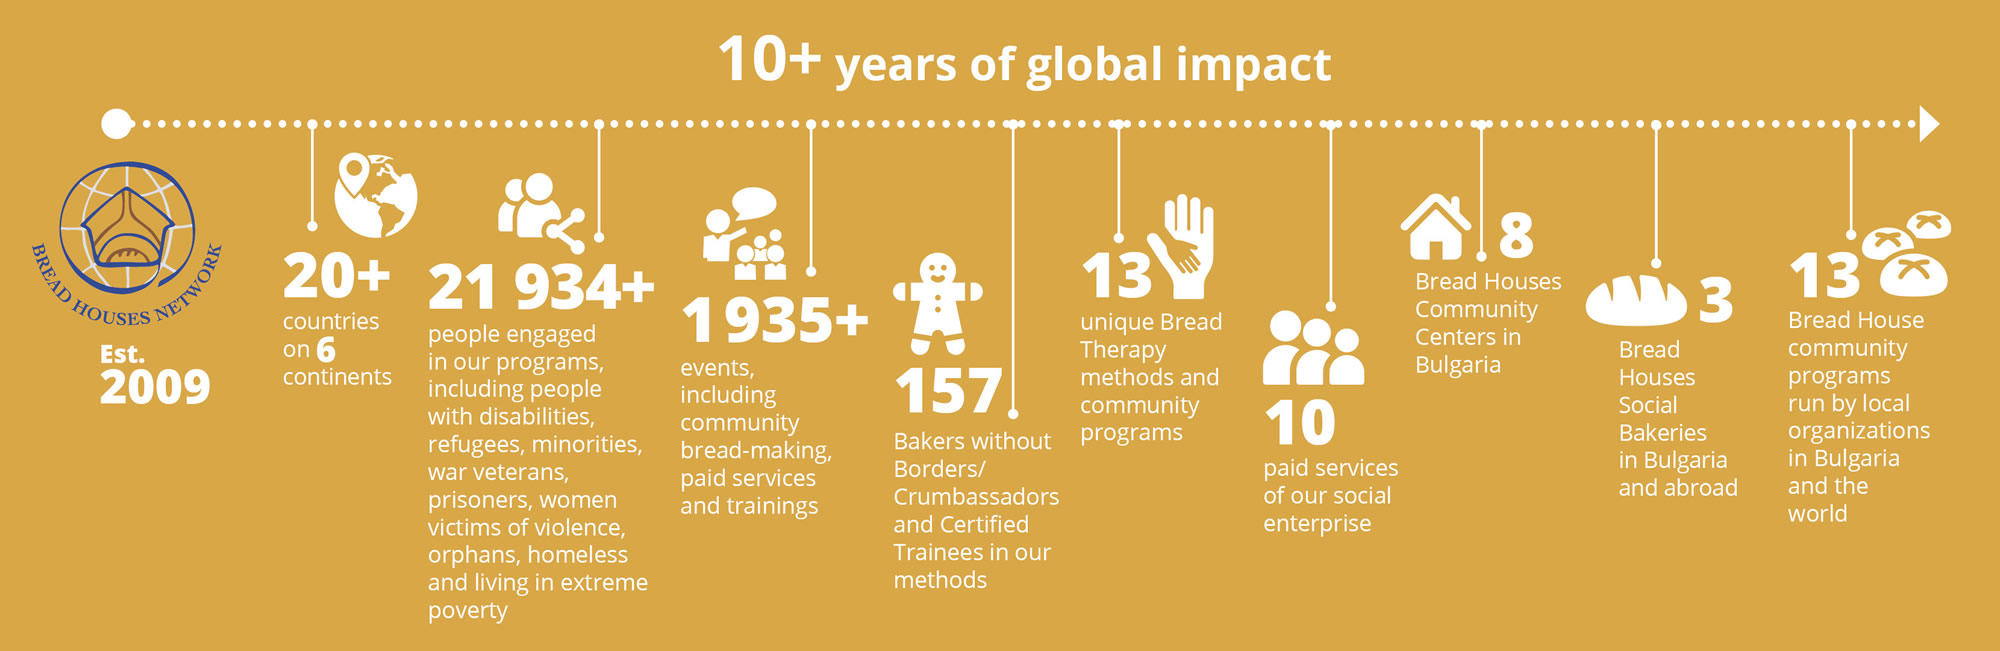 10+ years of global impact